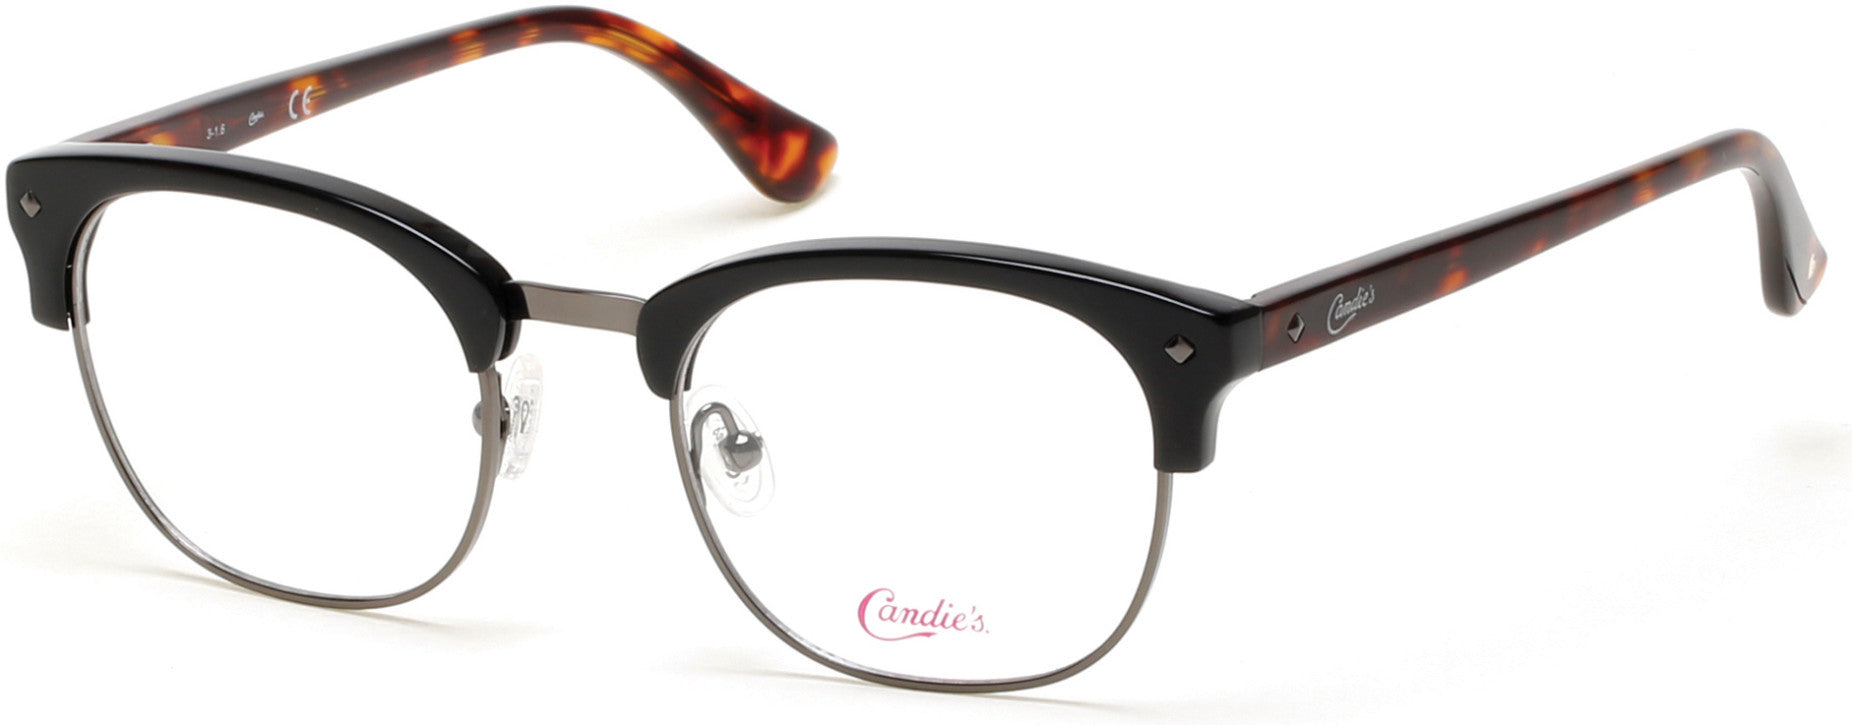 Candies CA0140 Geometric Eyeglasses 005-005 - Black/other